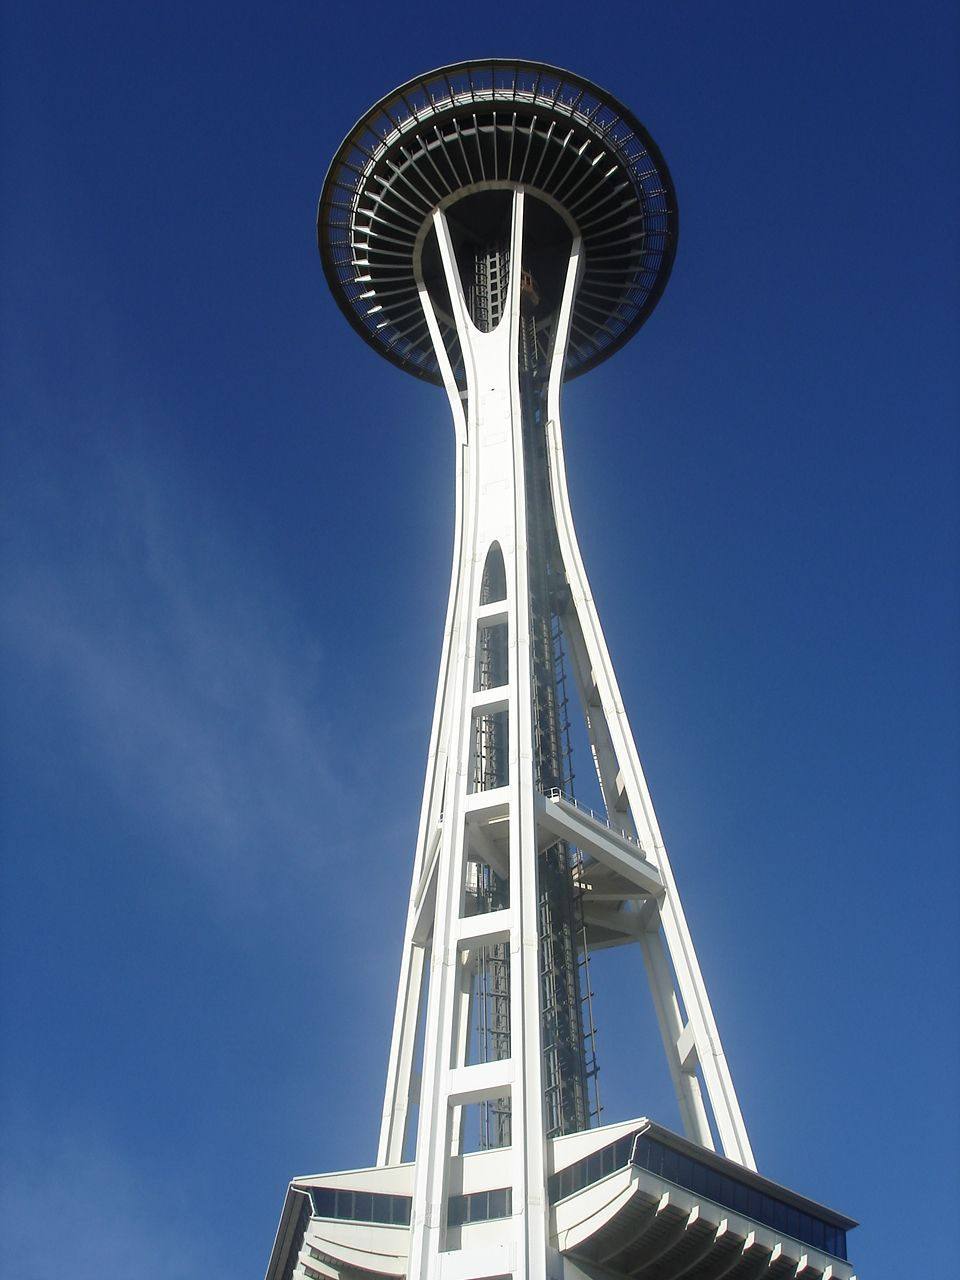 Seattlego To Www Bing Com: Been Here For 20 Years. Seattle, WA